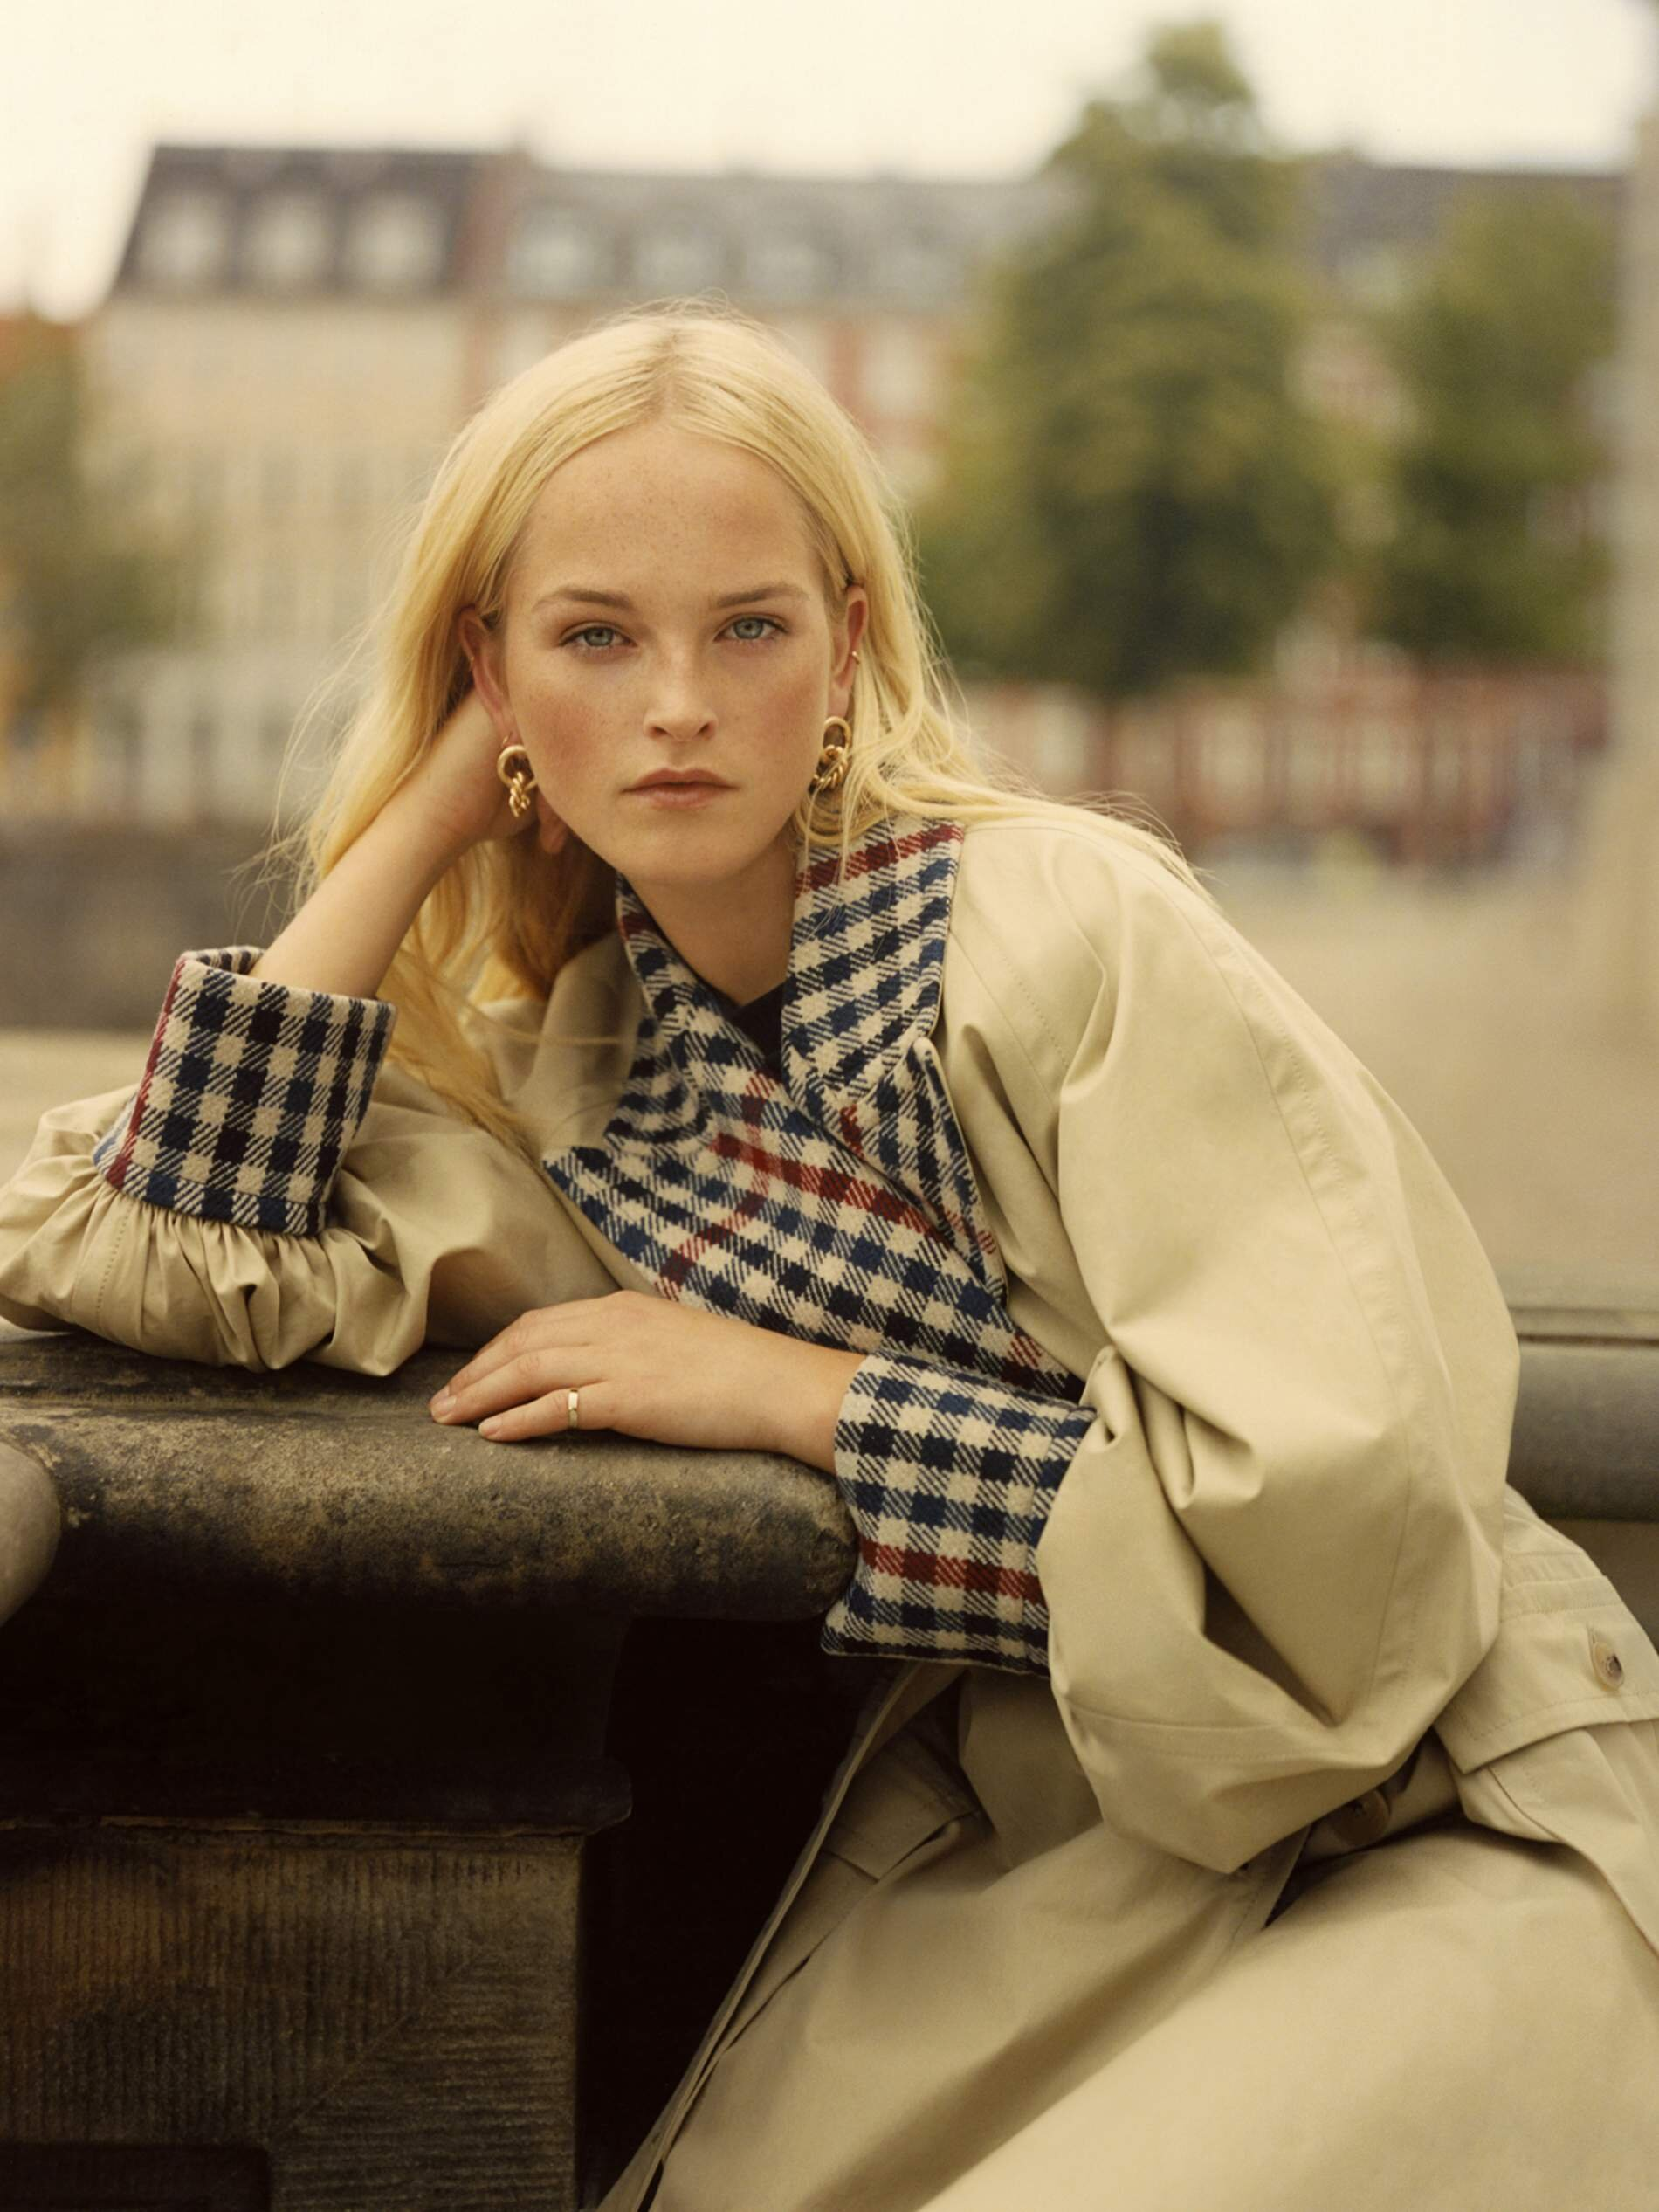 Image Jean Campbell by Quentin De Briey for Porter Edit. Coat, JW Anderson; top (just seen), Aries; earrings, Laura Lombardi; ring, Grace Lee.